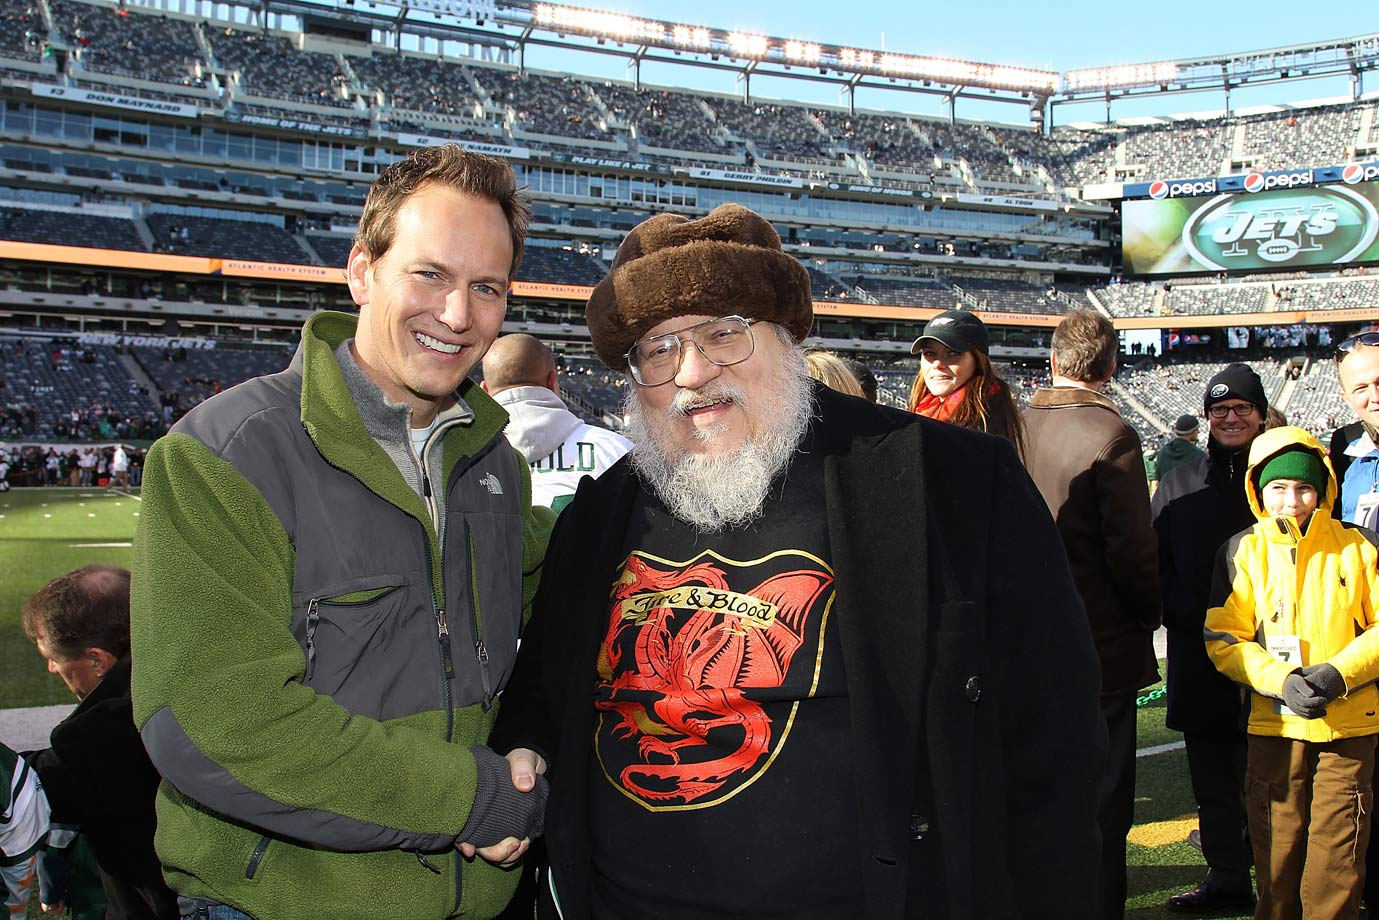 George R.R. Martin poses with Patrick Wilson as they attend an NFL game between the New York Jets and Kansas City Chiefs at MetLife Stadium on Dec. 11, 2011 in East Rutherford, N.J.